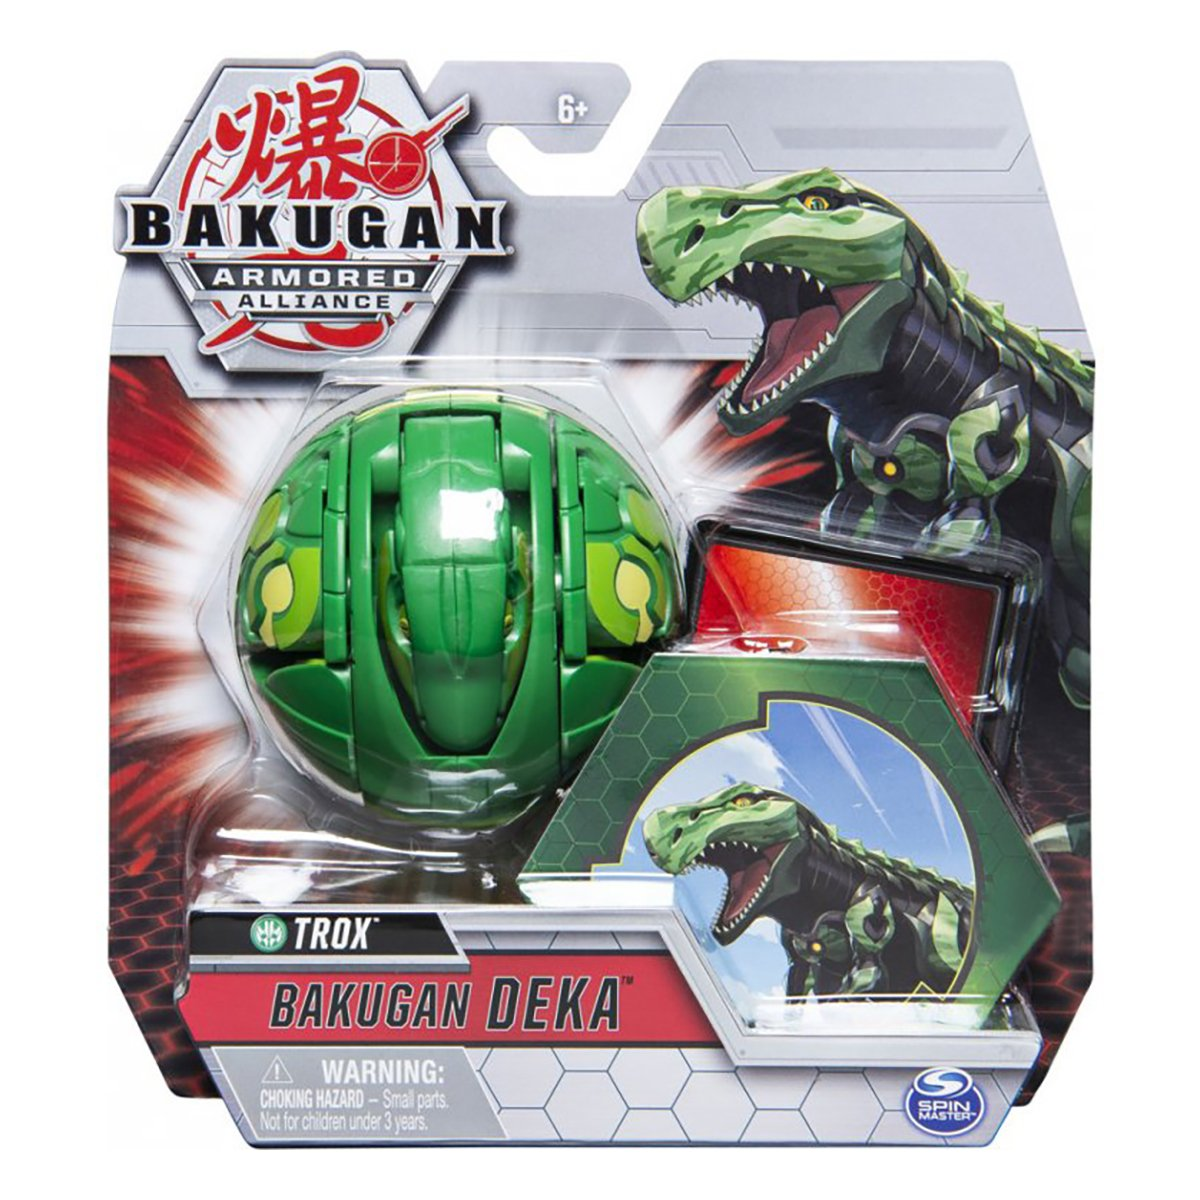 Figurina Bakugan Deka Armored Alliance, Trox Green, 20122718